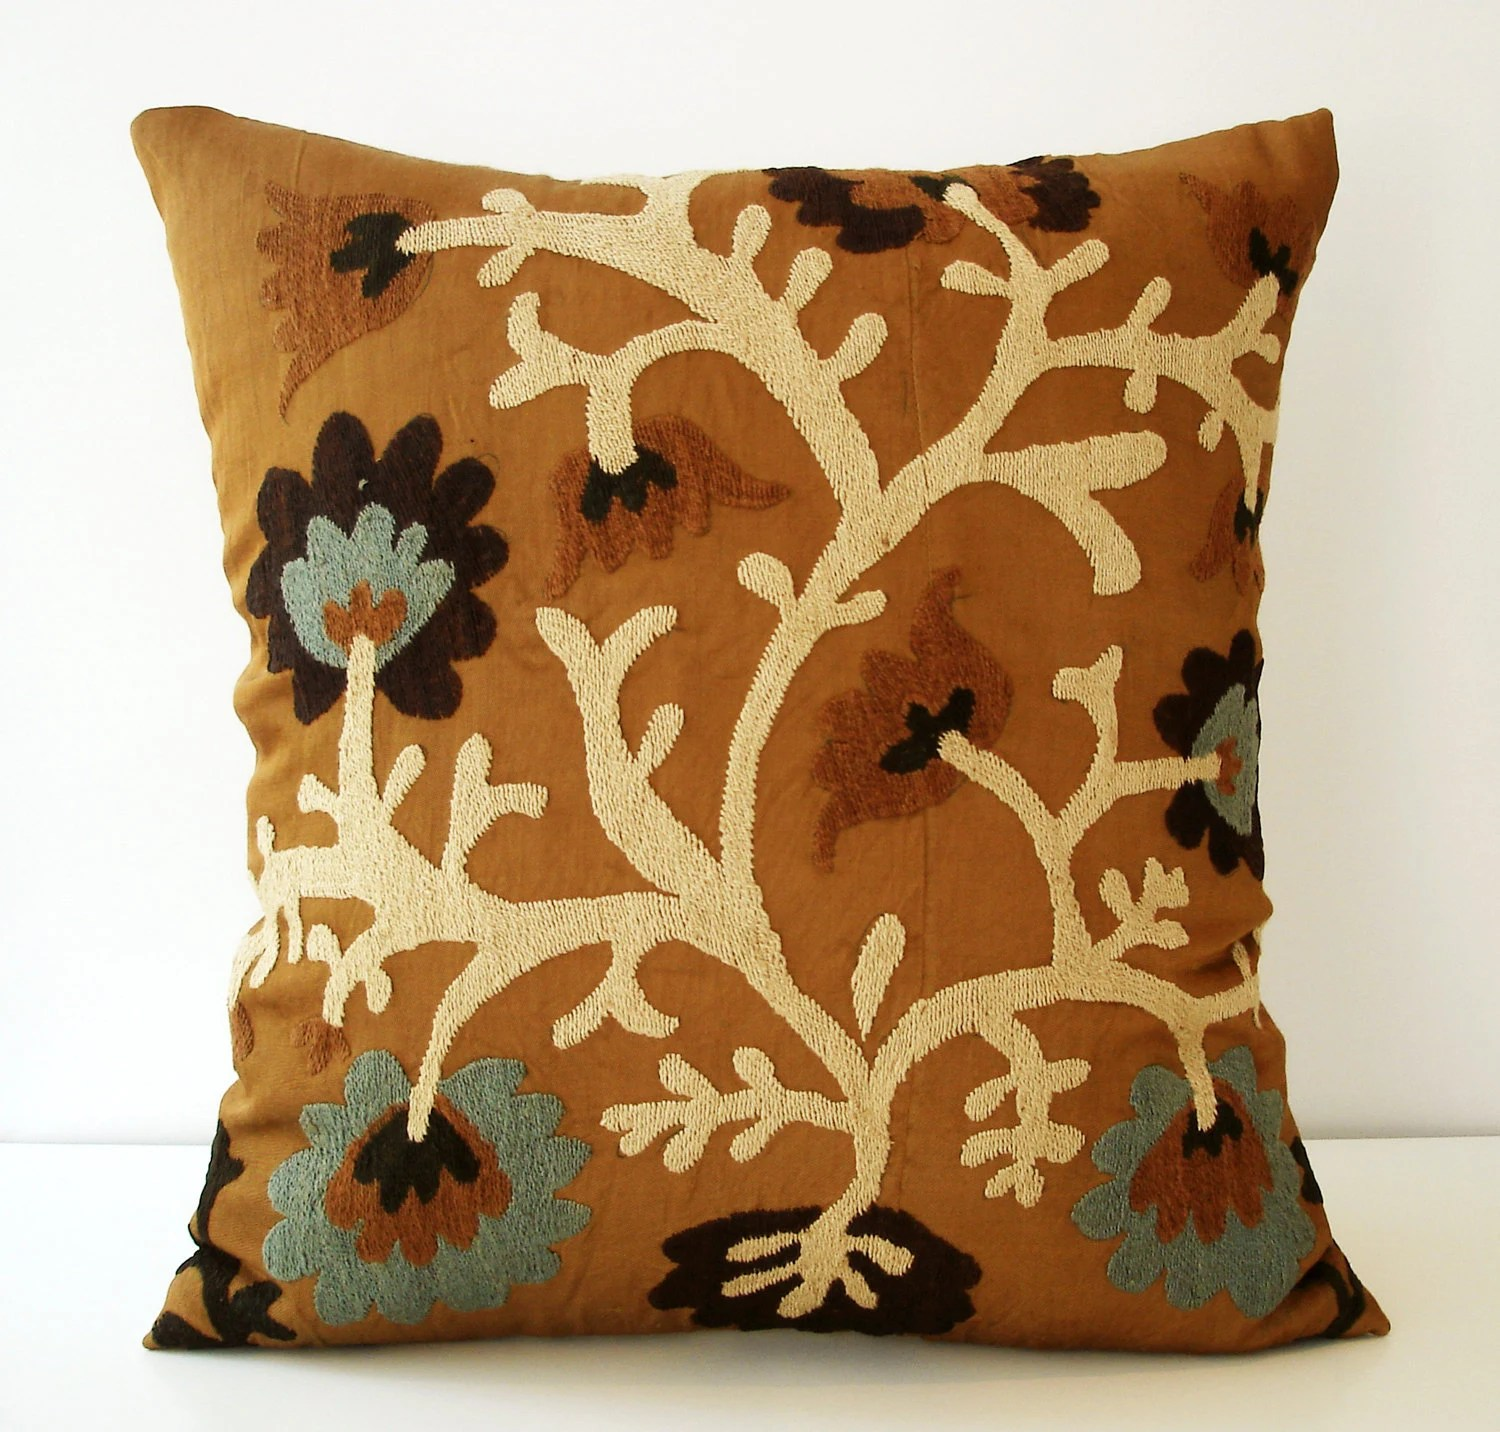 Sukan / Vintage Hand Embroidered Suzani Pillow Cover - 18x18